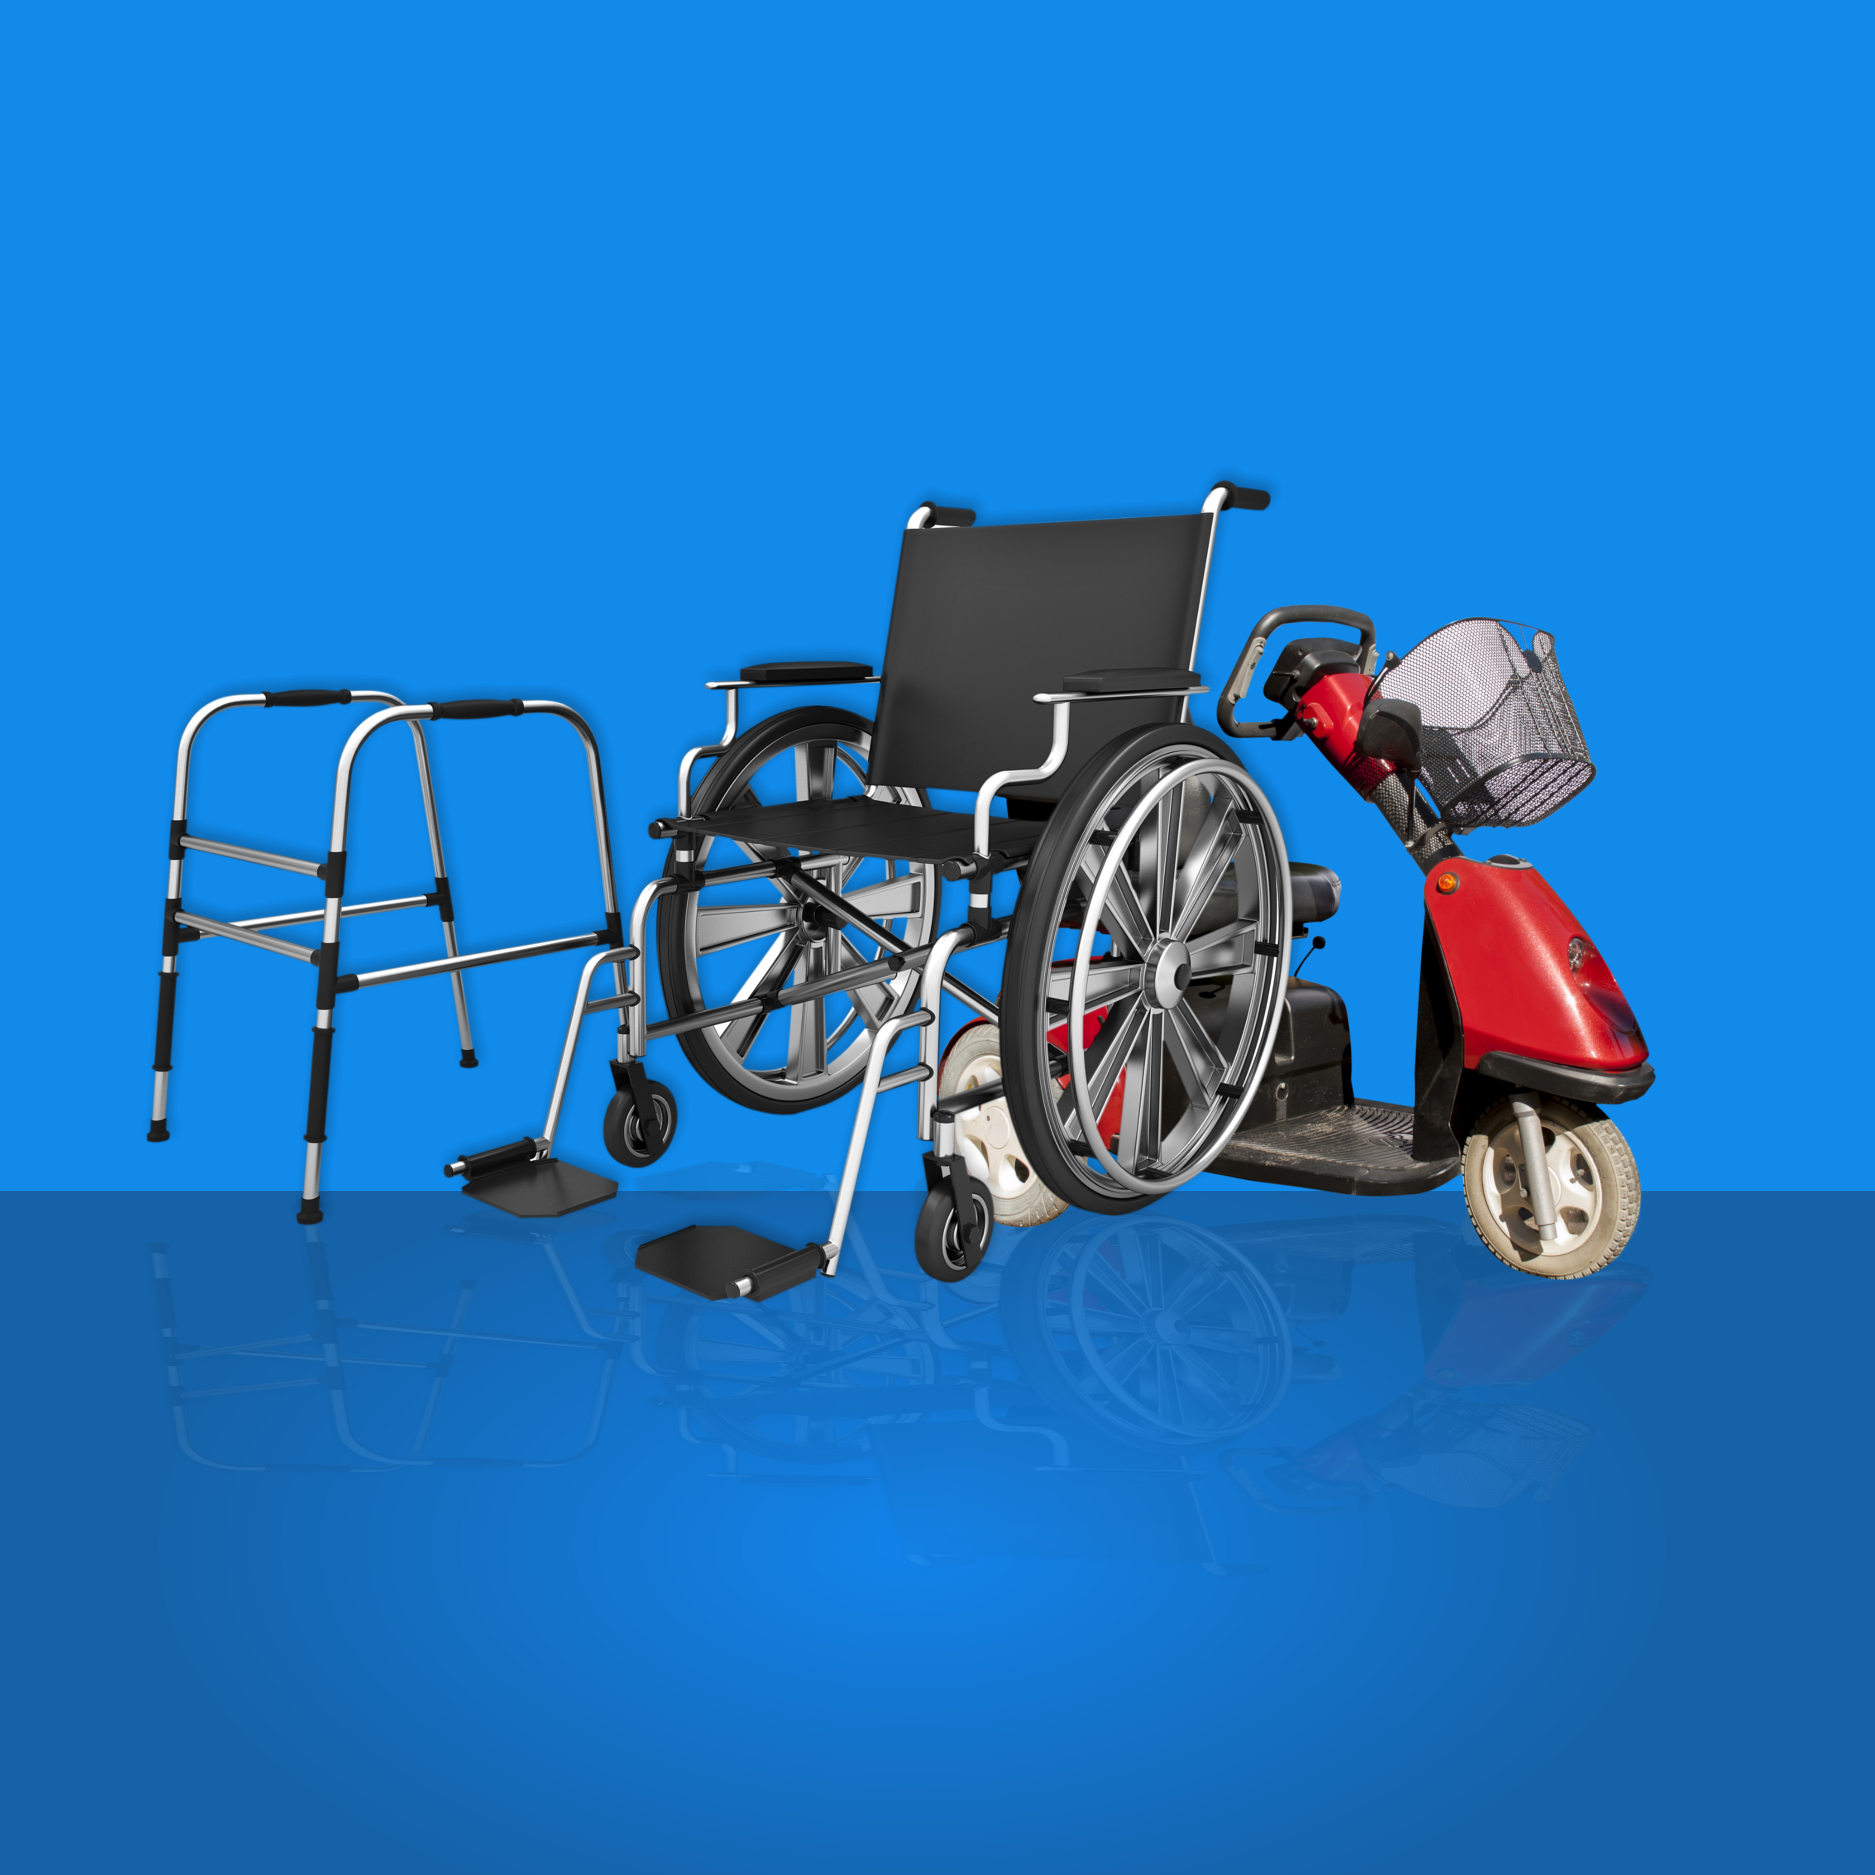 AMBULATORY AND MOBILITY PRODUCTS